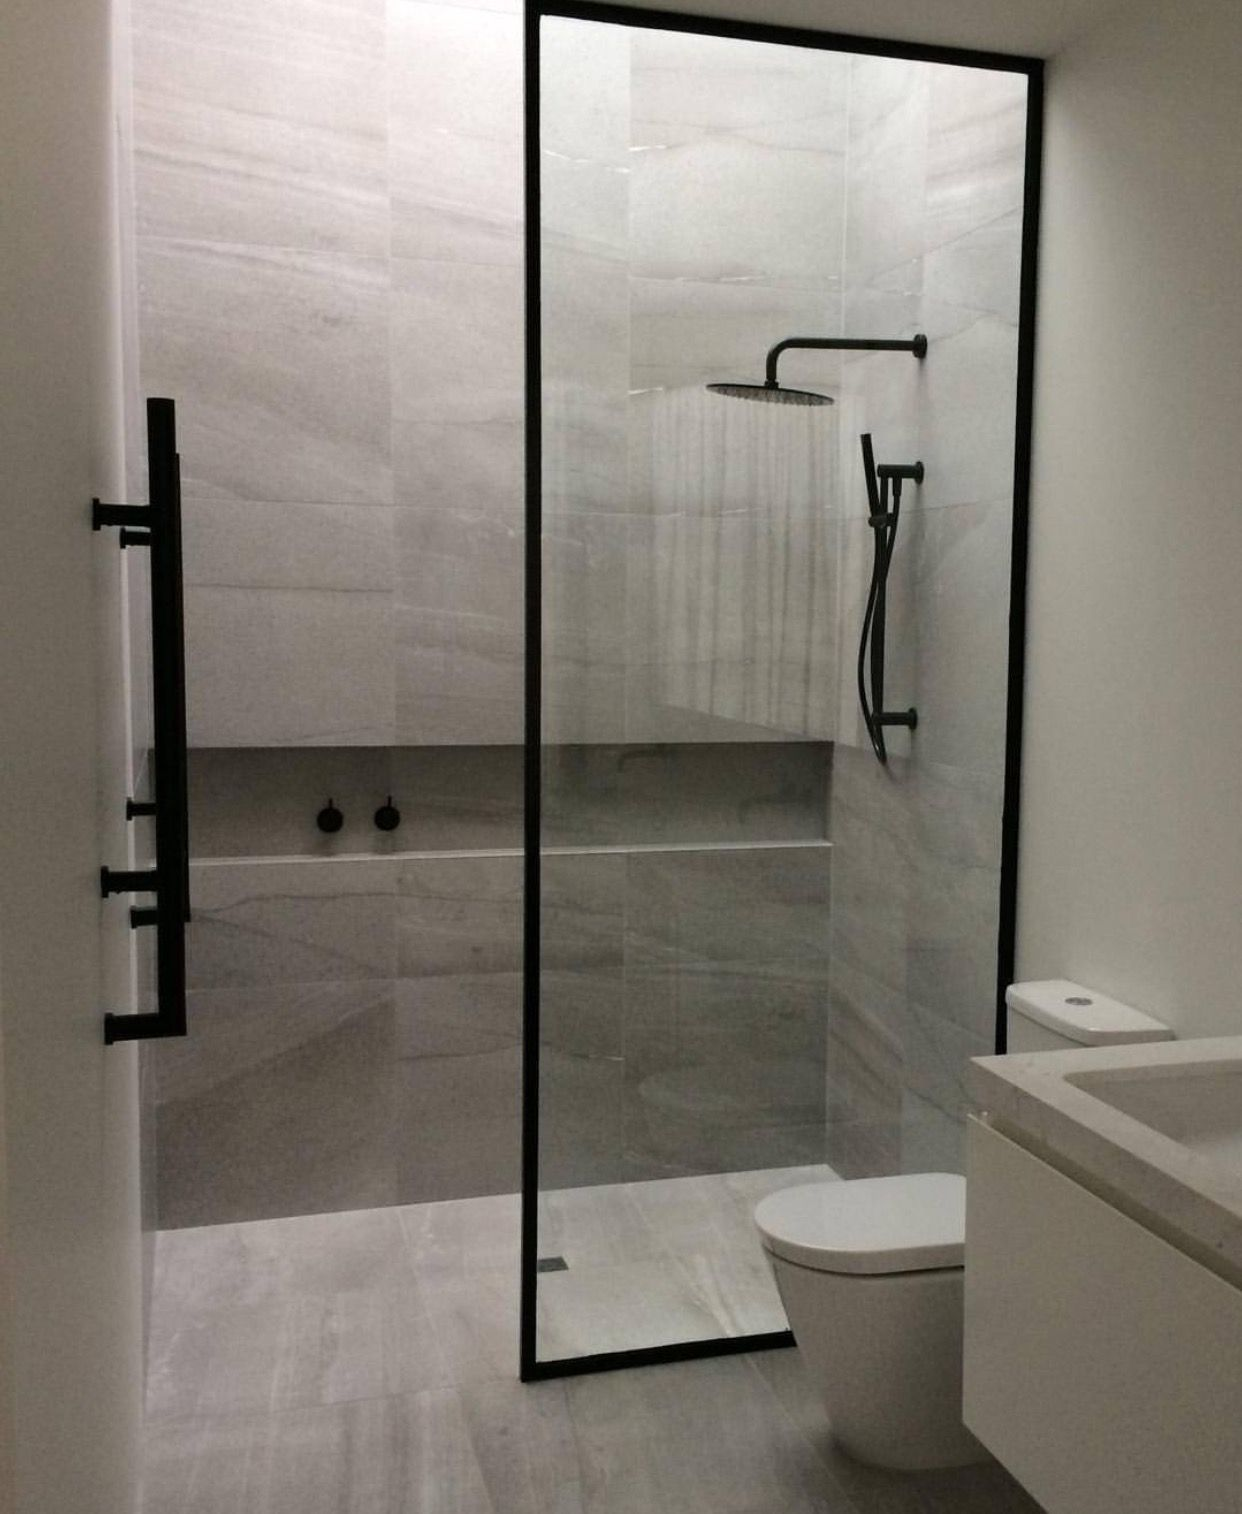 Best Of Open Entry Shower Door